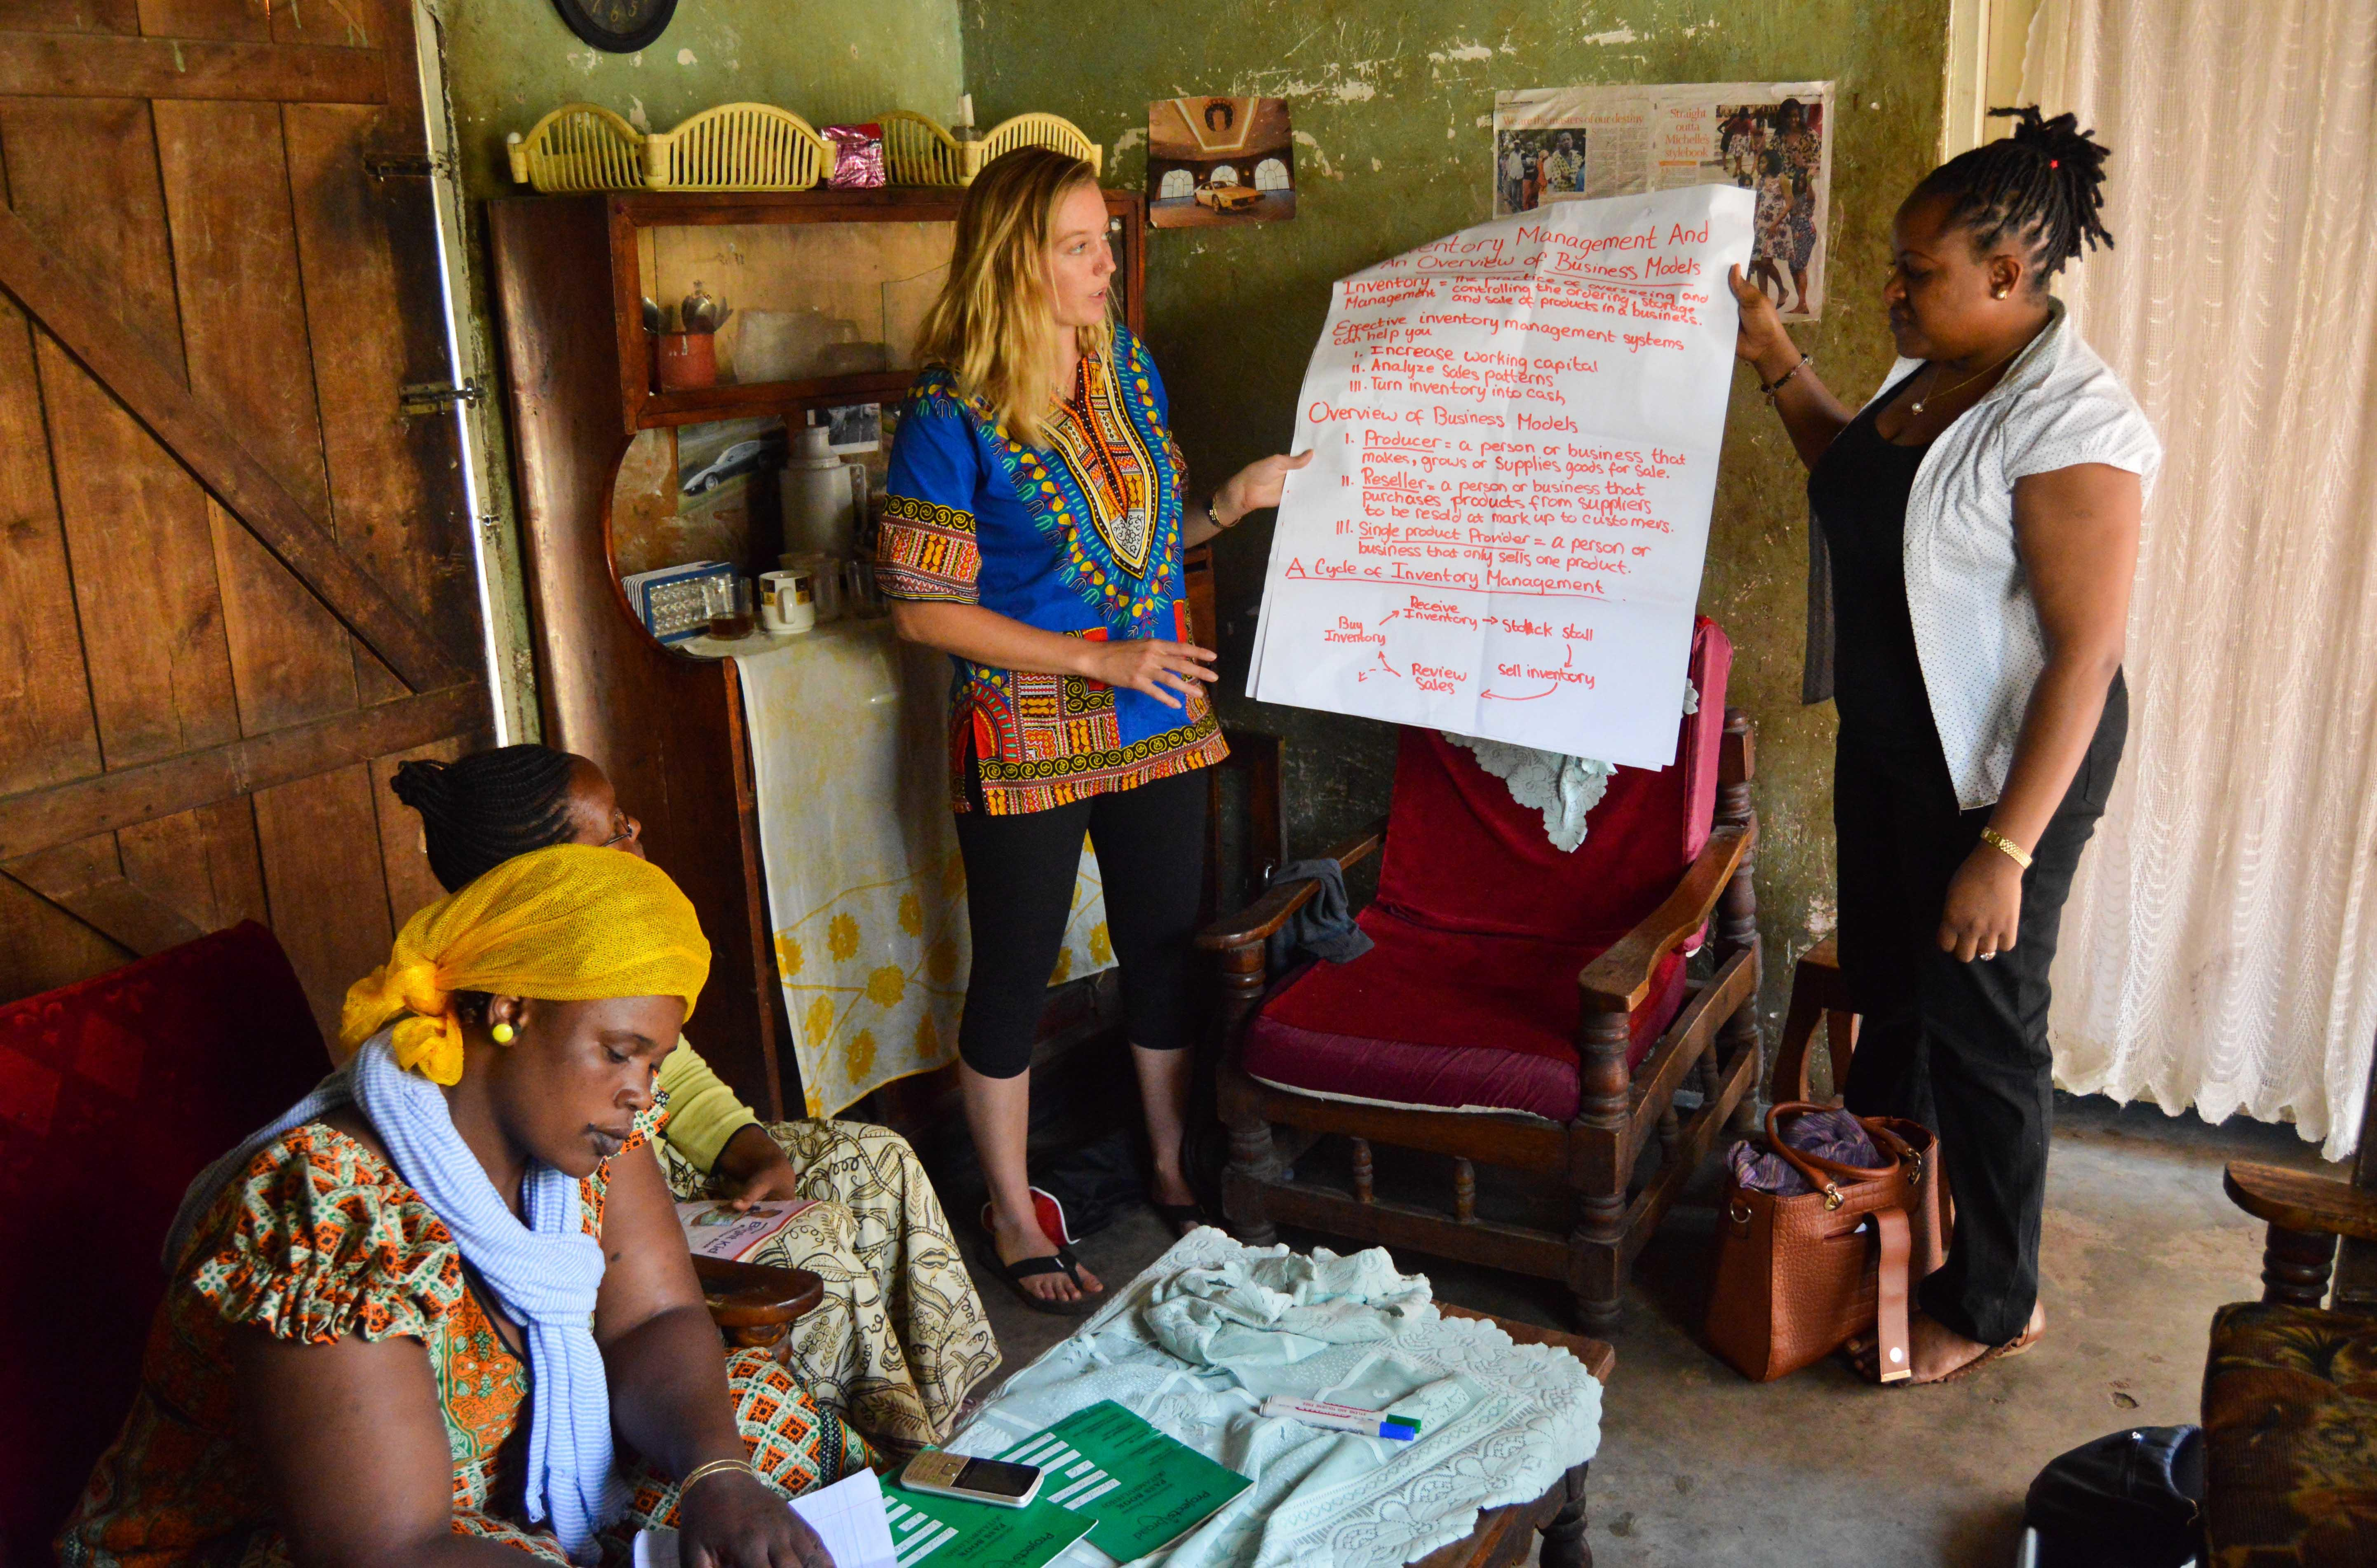 Interns gain micro-finance work experience in Tanzania by giving a presentation to small business owners